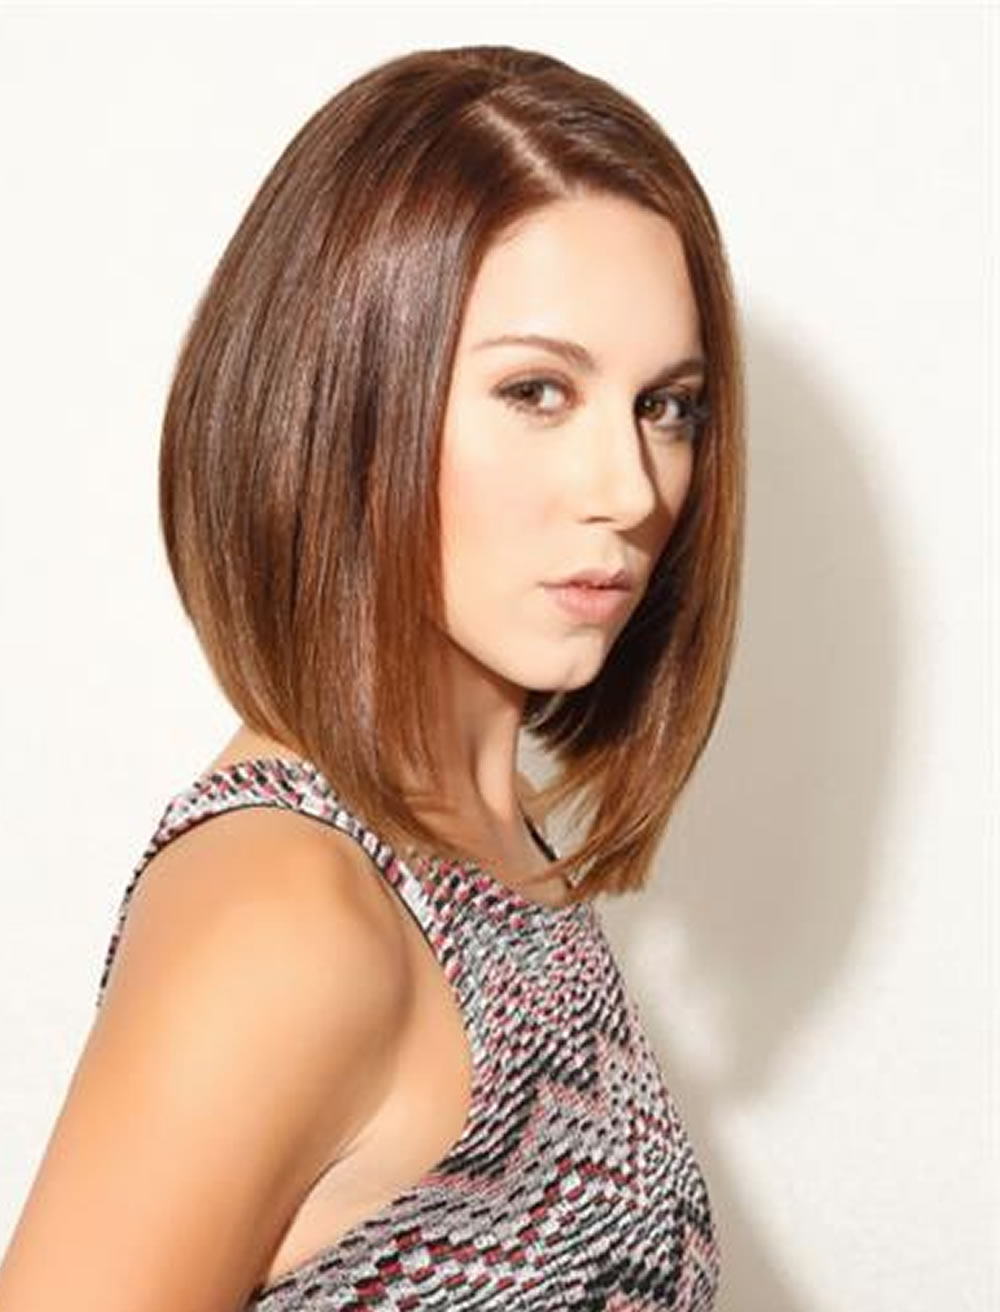 26 Long Short Bob Haircuts For Fine Hair 2017 2018 – Page 3 – Hairstyles For Disheveled Burgundy Brown Bob Hairstyles (View 14 of 25)